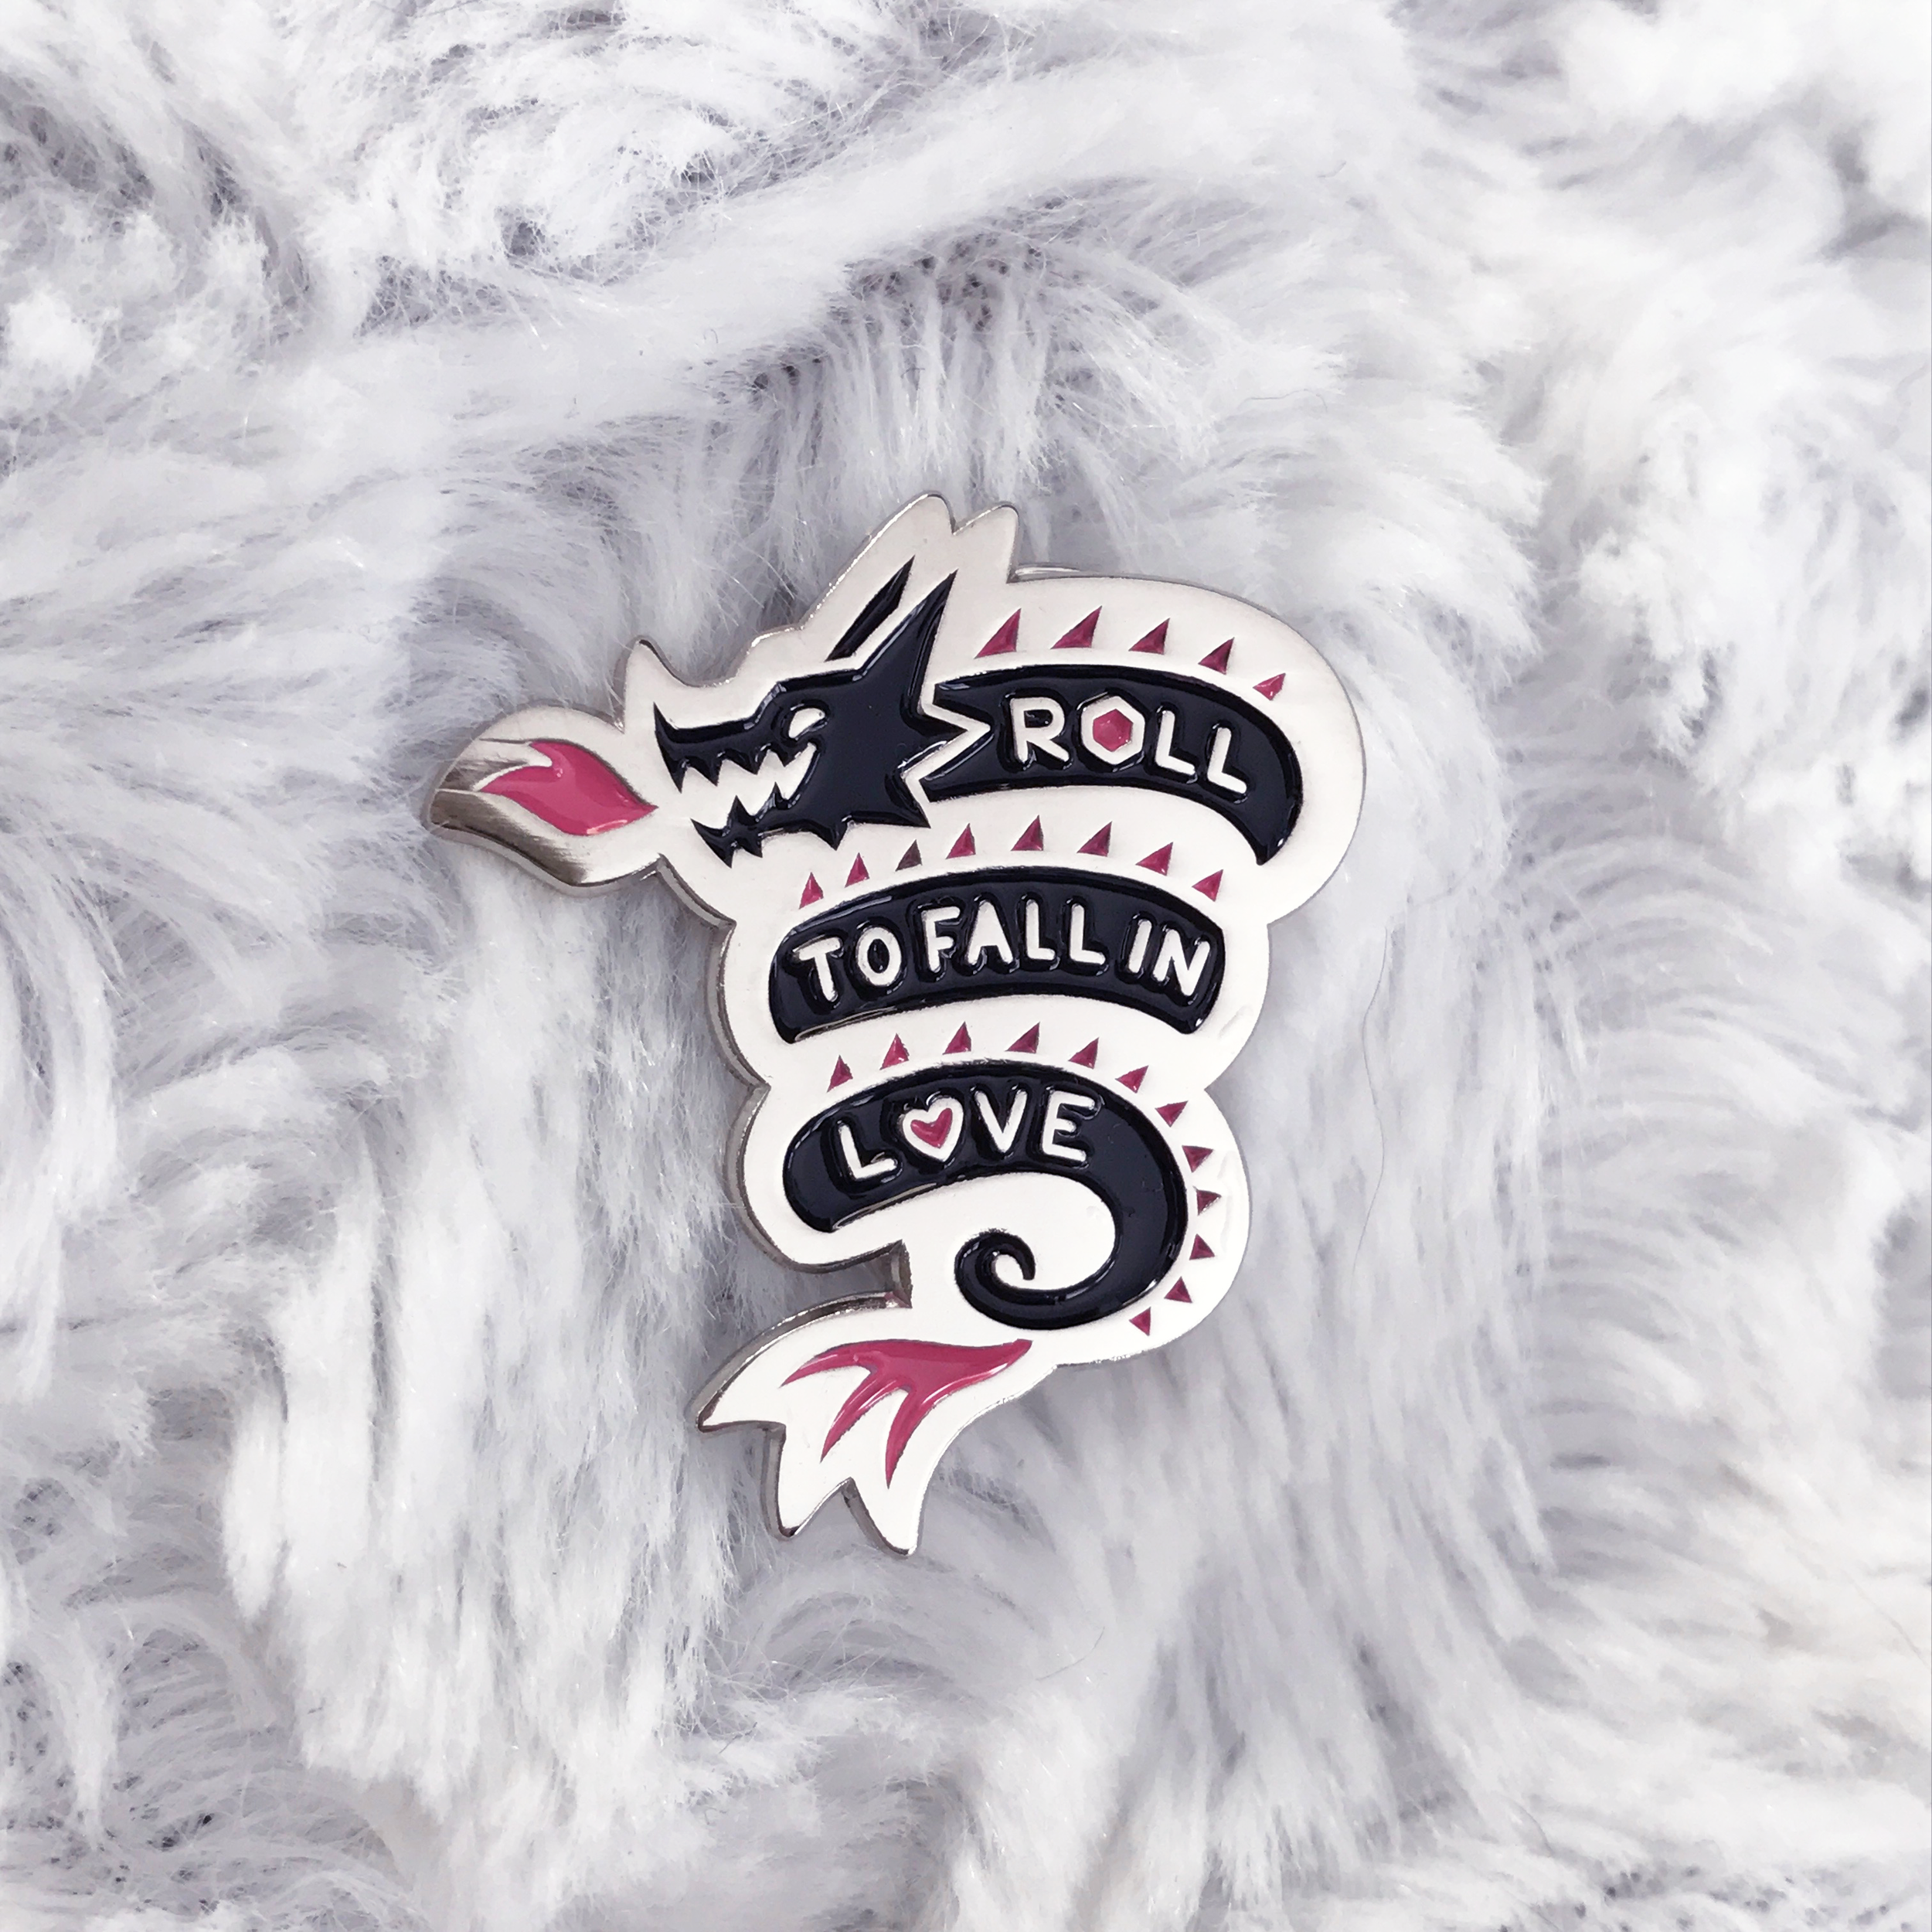 Roll to Fall in Love Enamel Pin